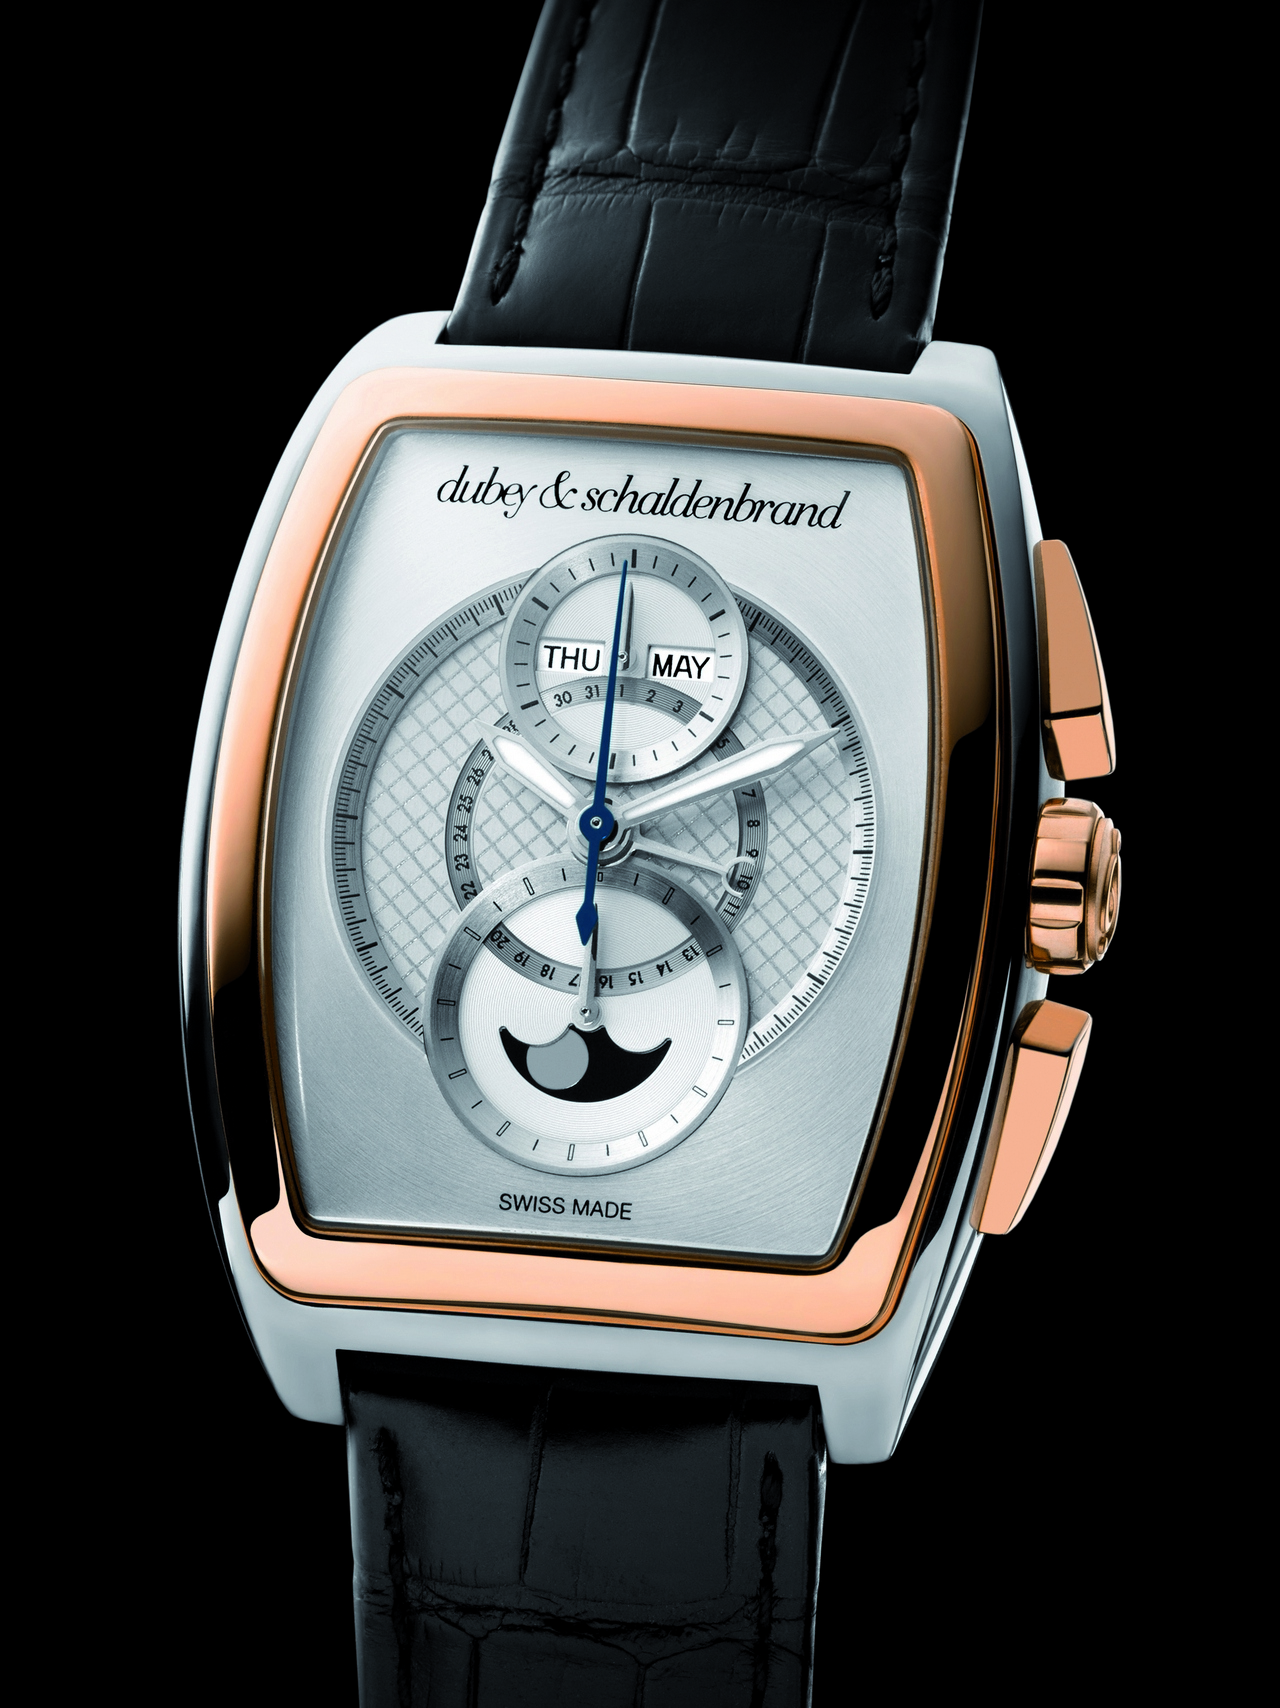 baselworld-2013-dubey-schaldenbrand-grand-dome-dt-rose-gold_0-100 4